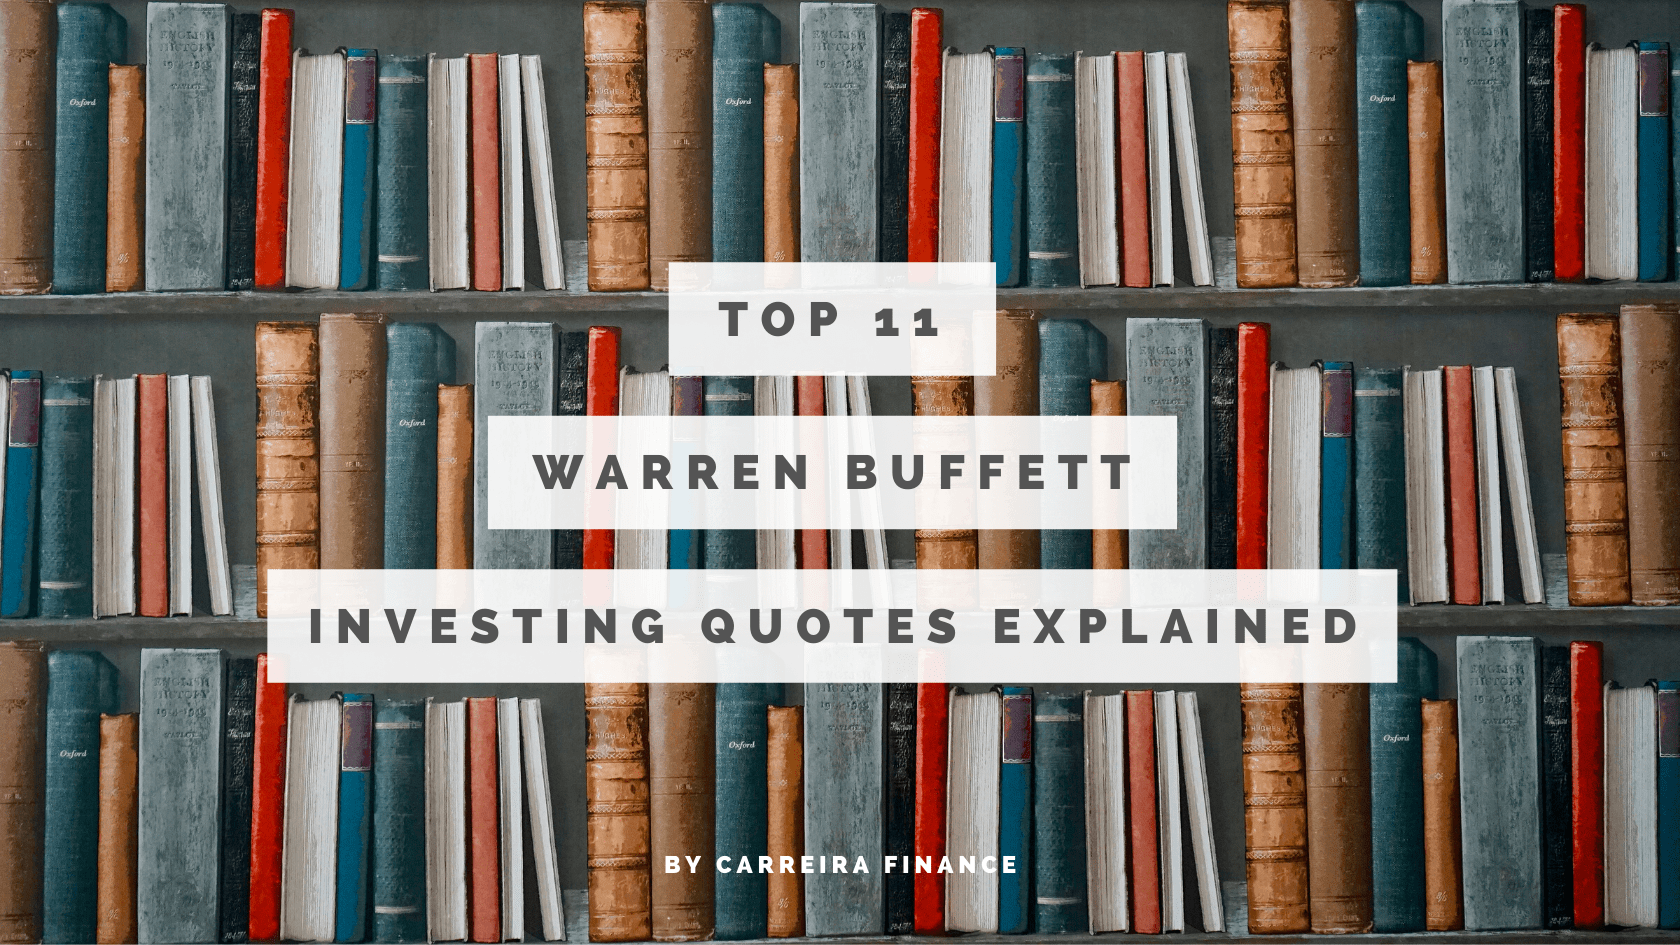 Warren Buffett Investing Quotes Explained - Carreira Finance Coaching